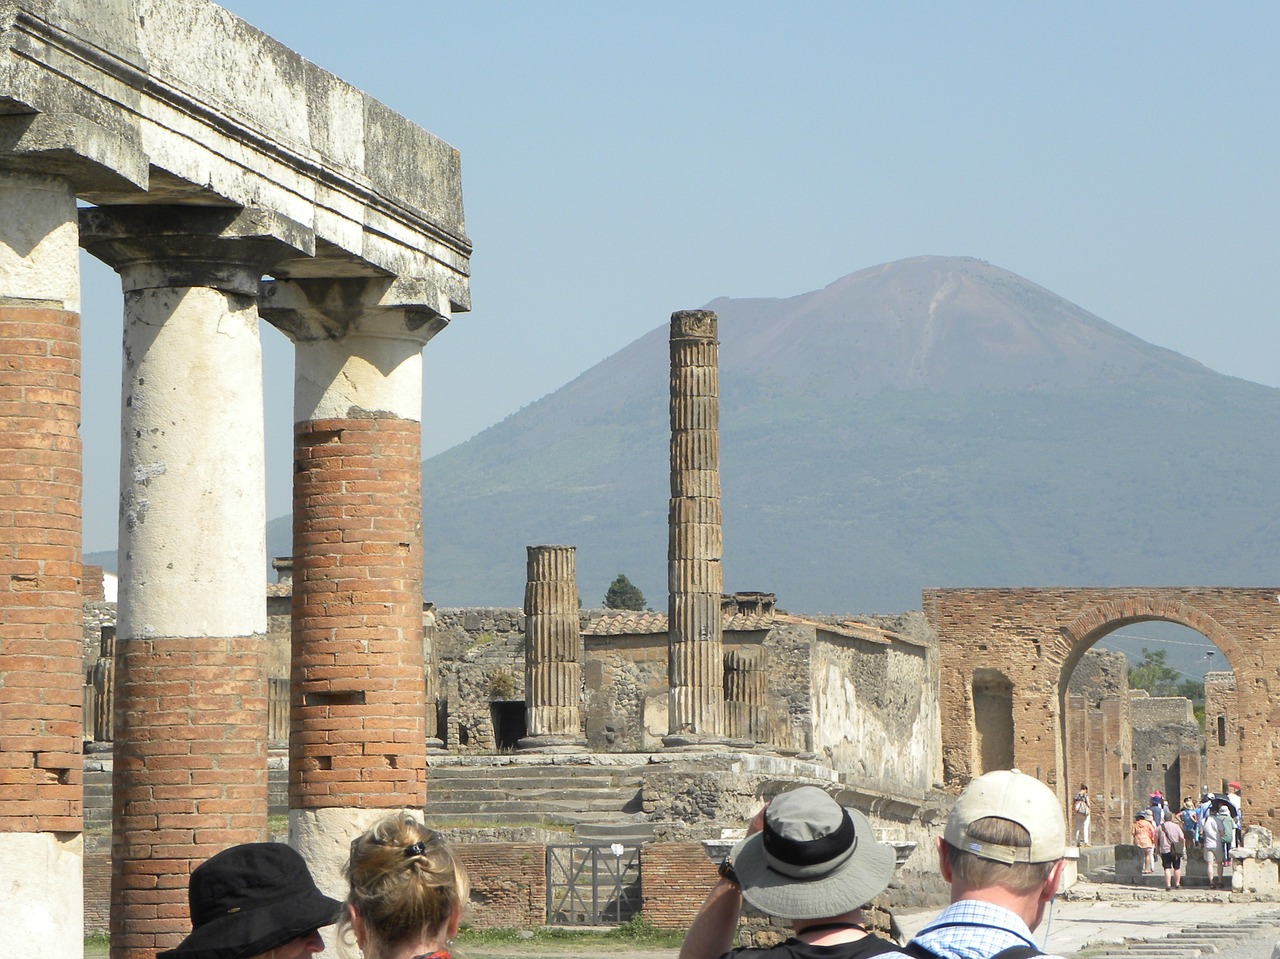 pompeii vesuvius italy free photo